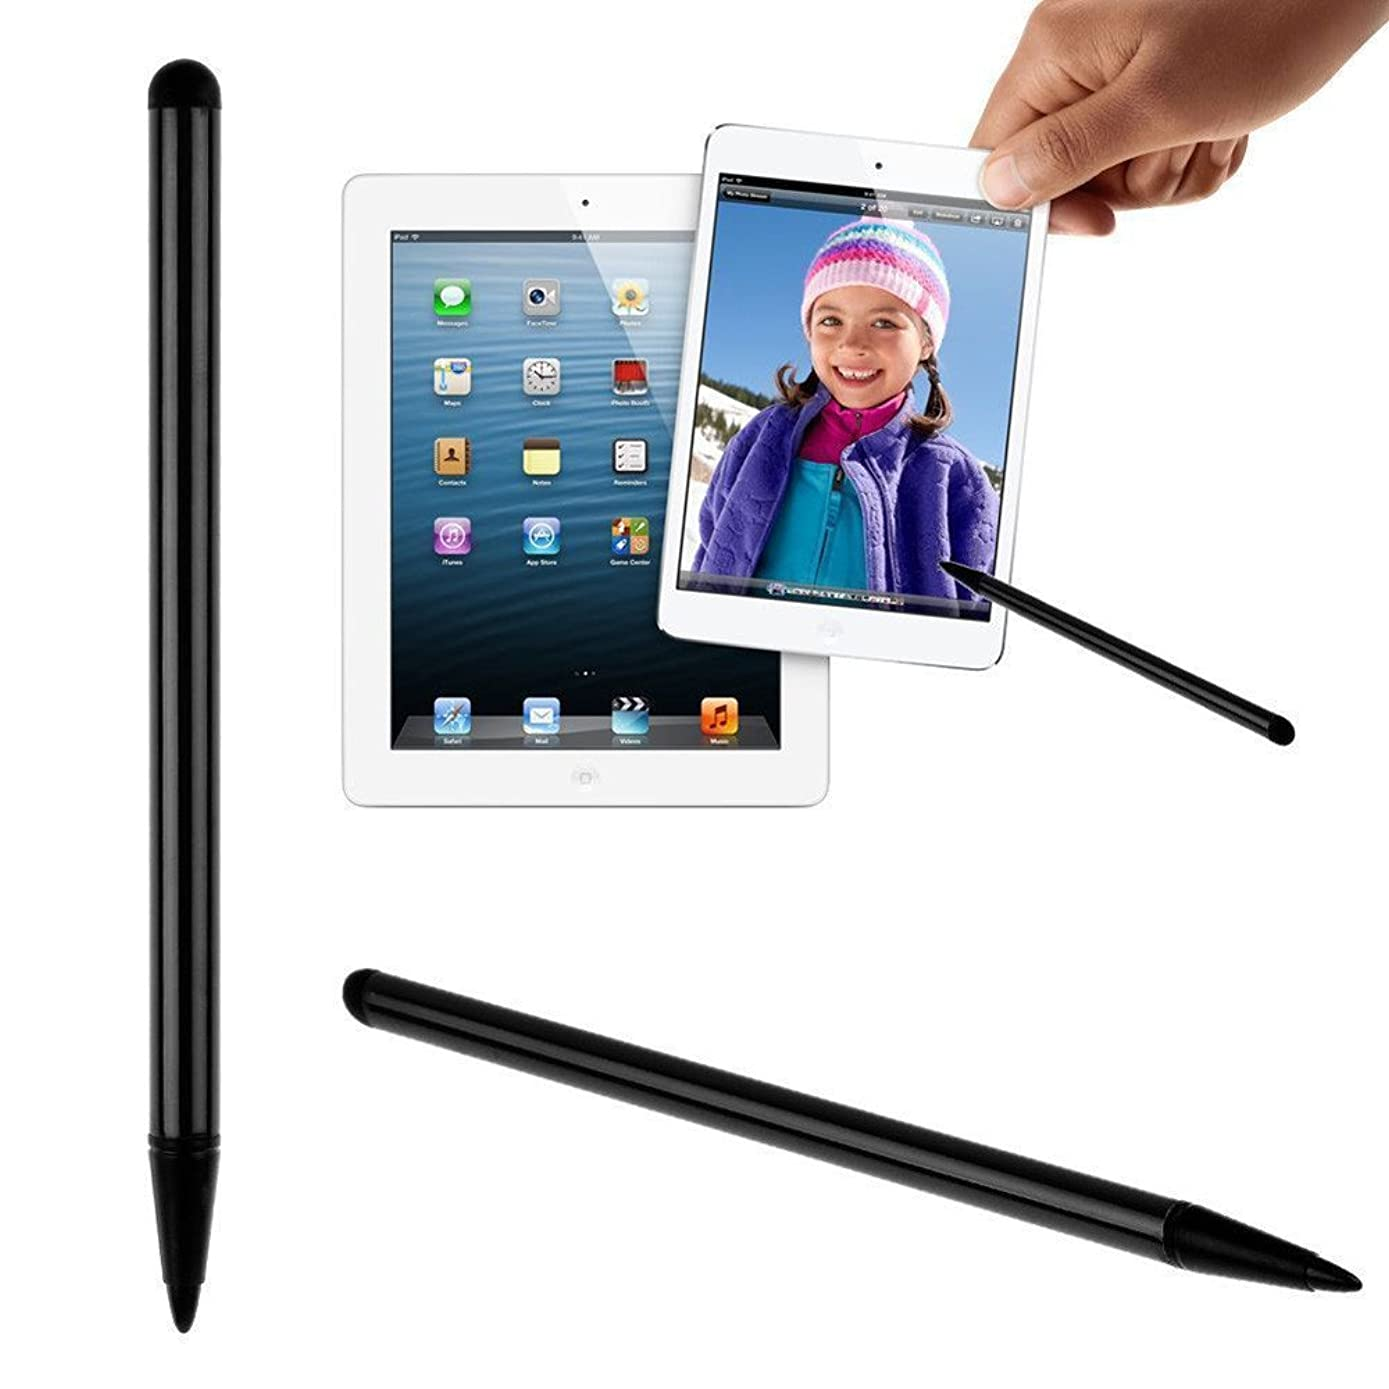 2019 Stylus Pens for Touch Screens Styluses Universal for iPhone iPad for Samsung Tablet Phone PC (Black)